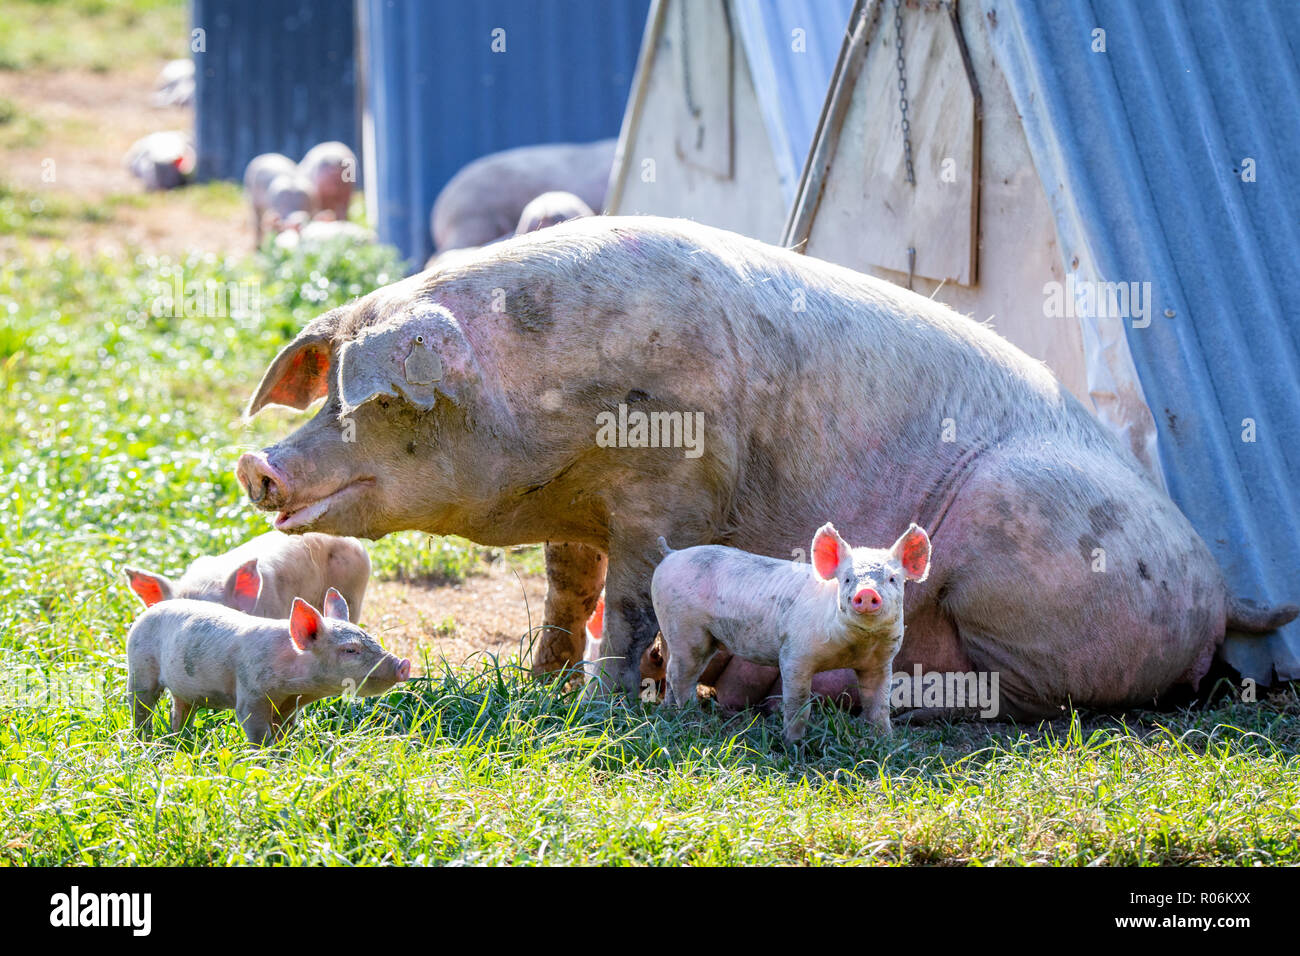 Piglets with their mother on a free range pig farm in New Zealand - Stock Image